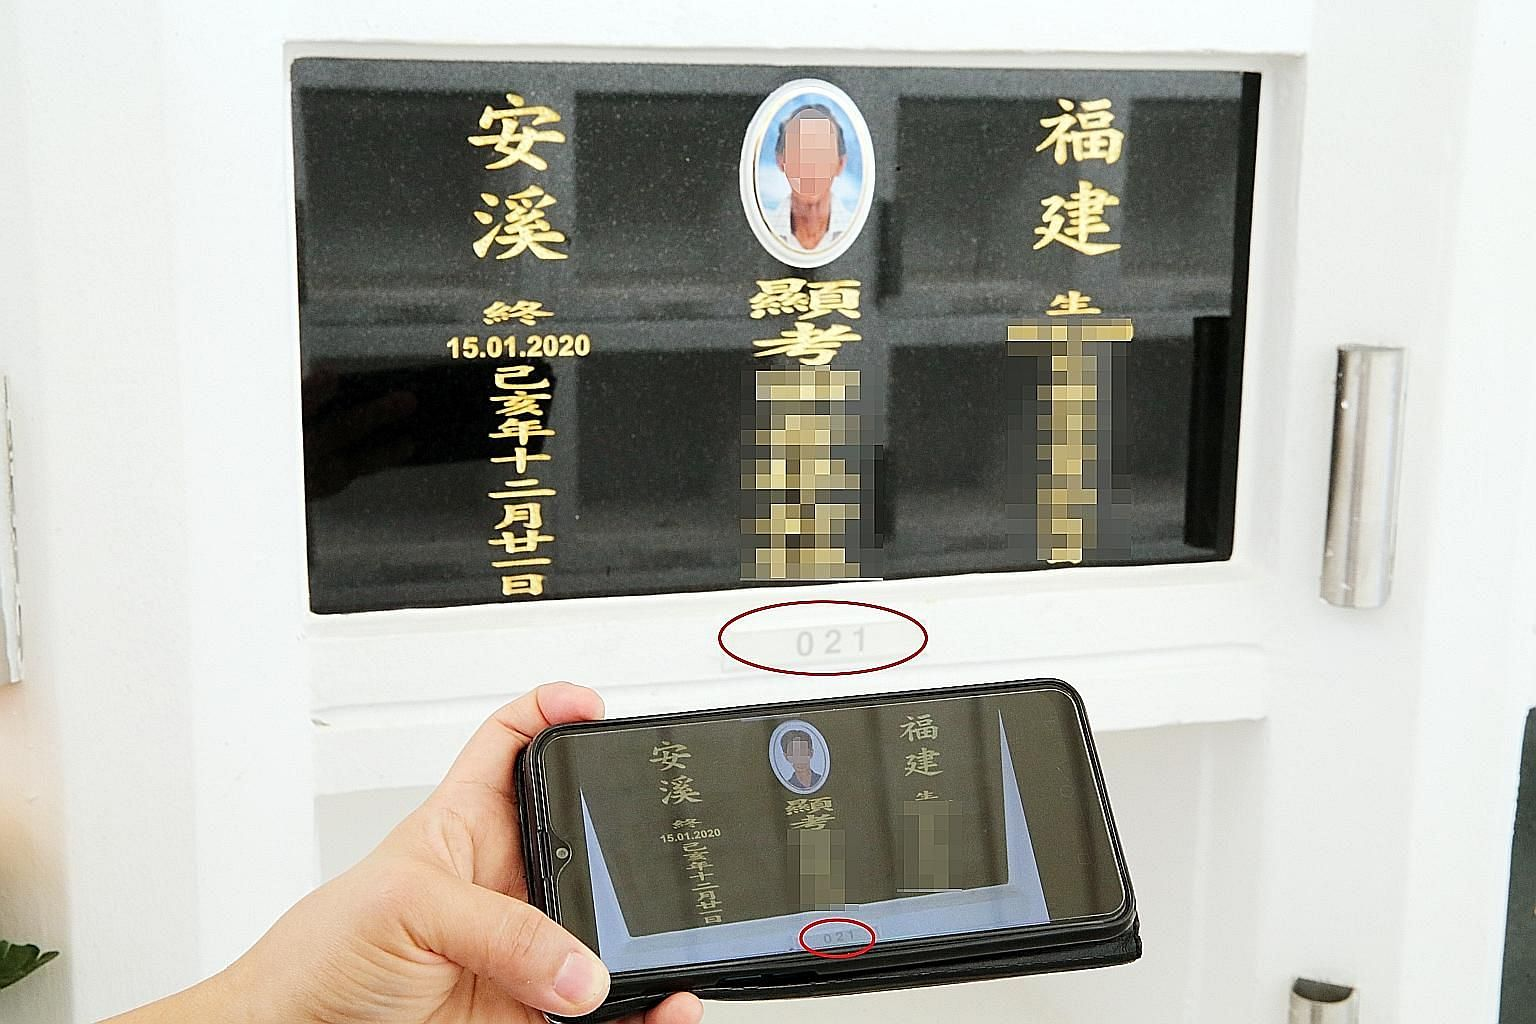 A plaque for Ms Lim's late father with someone else's photo on it seen on a phone in front of the corrected plaque yesterday. The housewife, whose full name was not stated in the Shin Min report, said she found out about the mistake after the operato